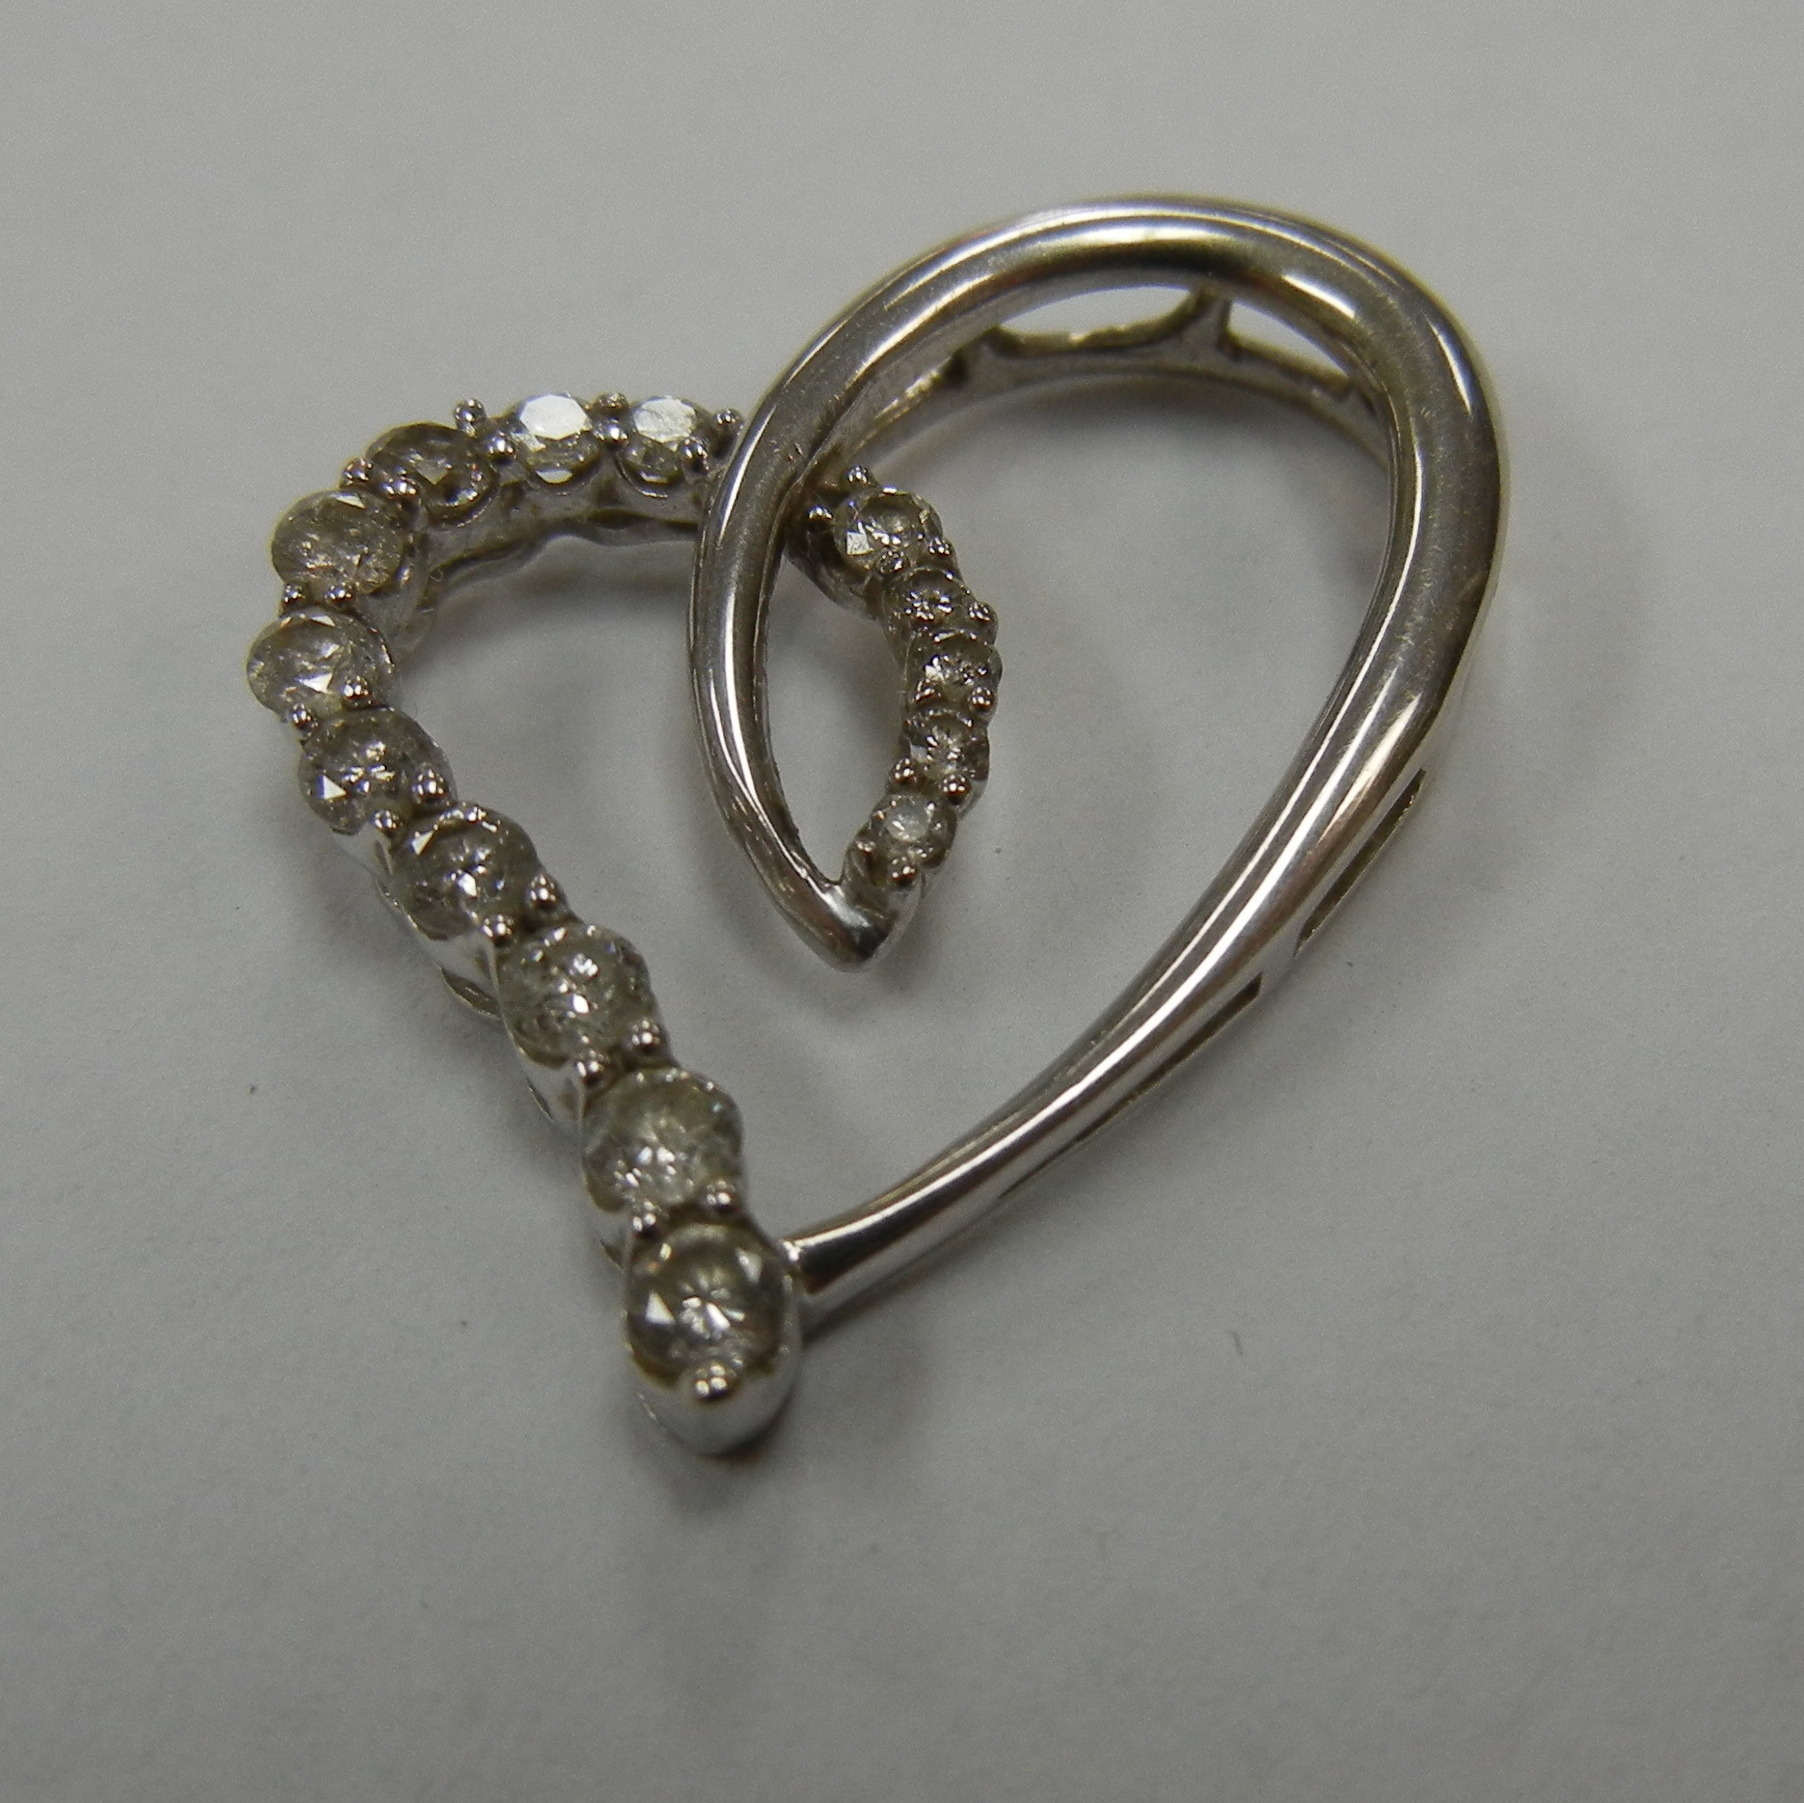 10 KT WHITE GOLD HEART PENDANT WITH DIAMONDS